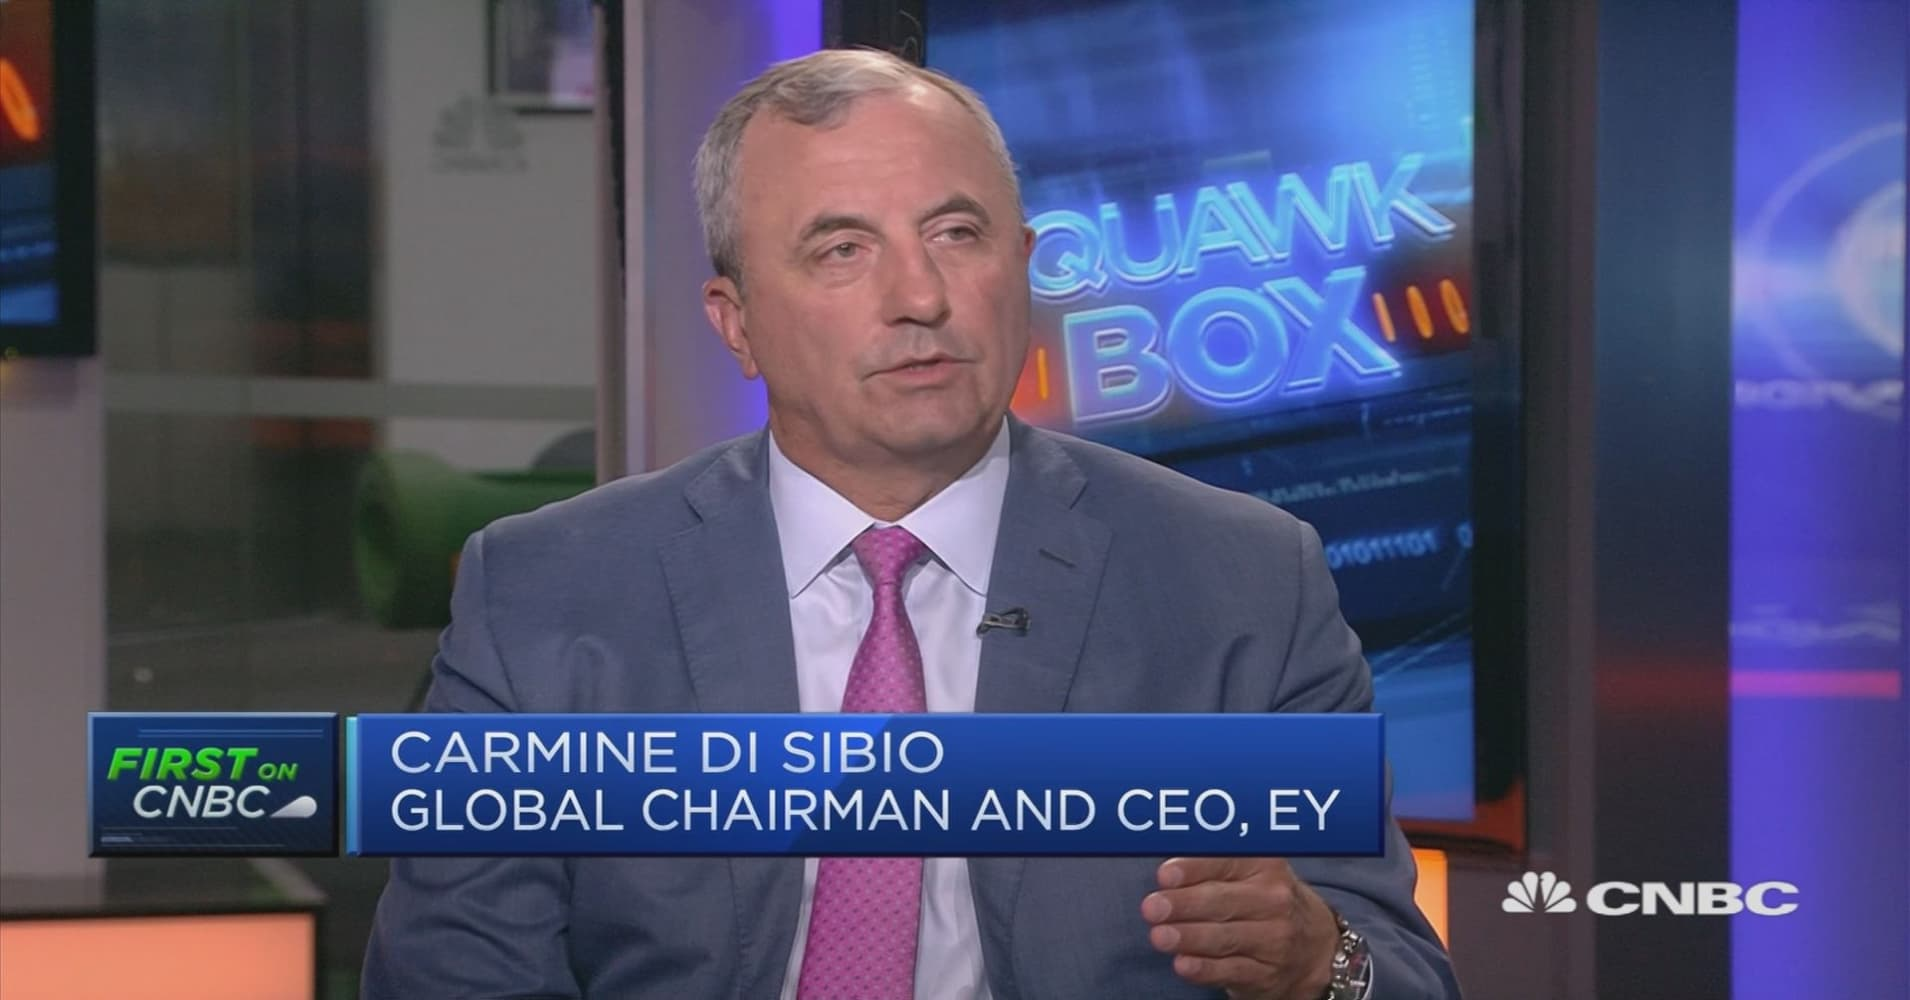 EY CEO: Clients want to diversify their supply chain amid trade war